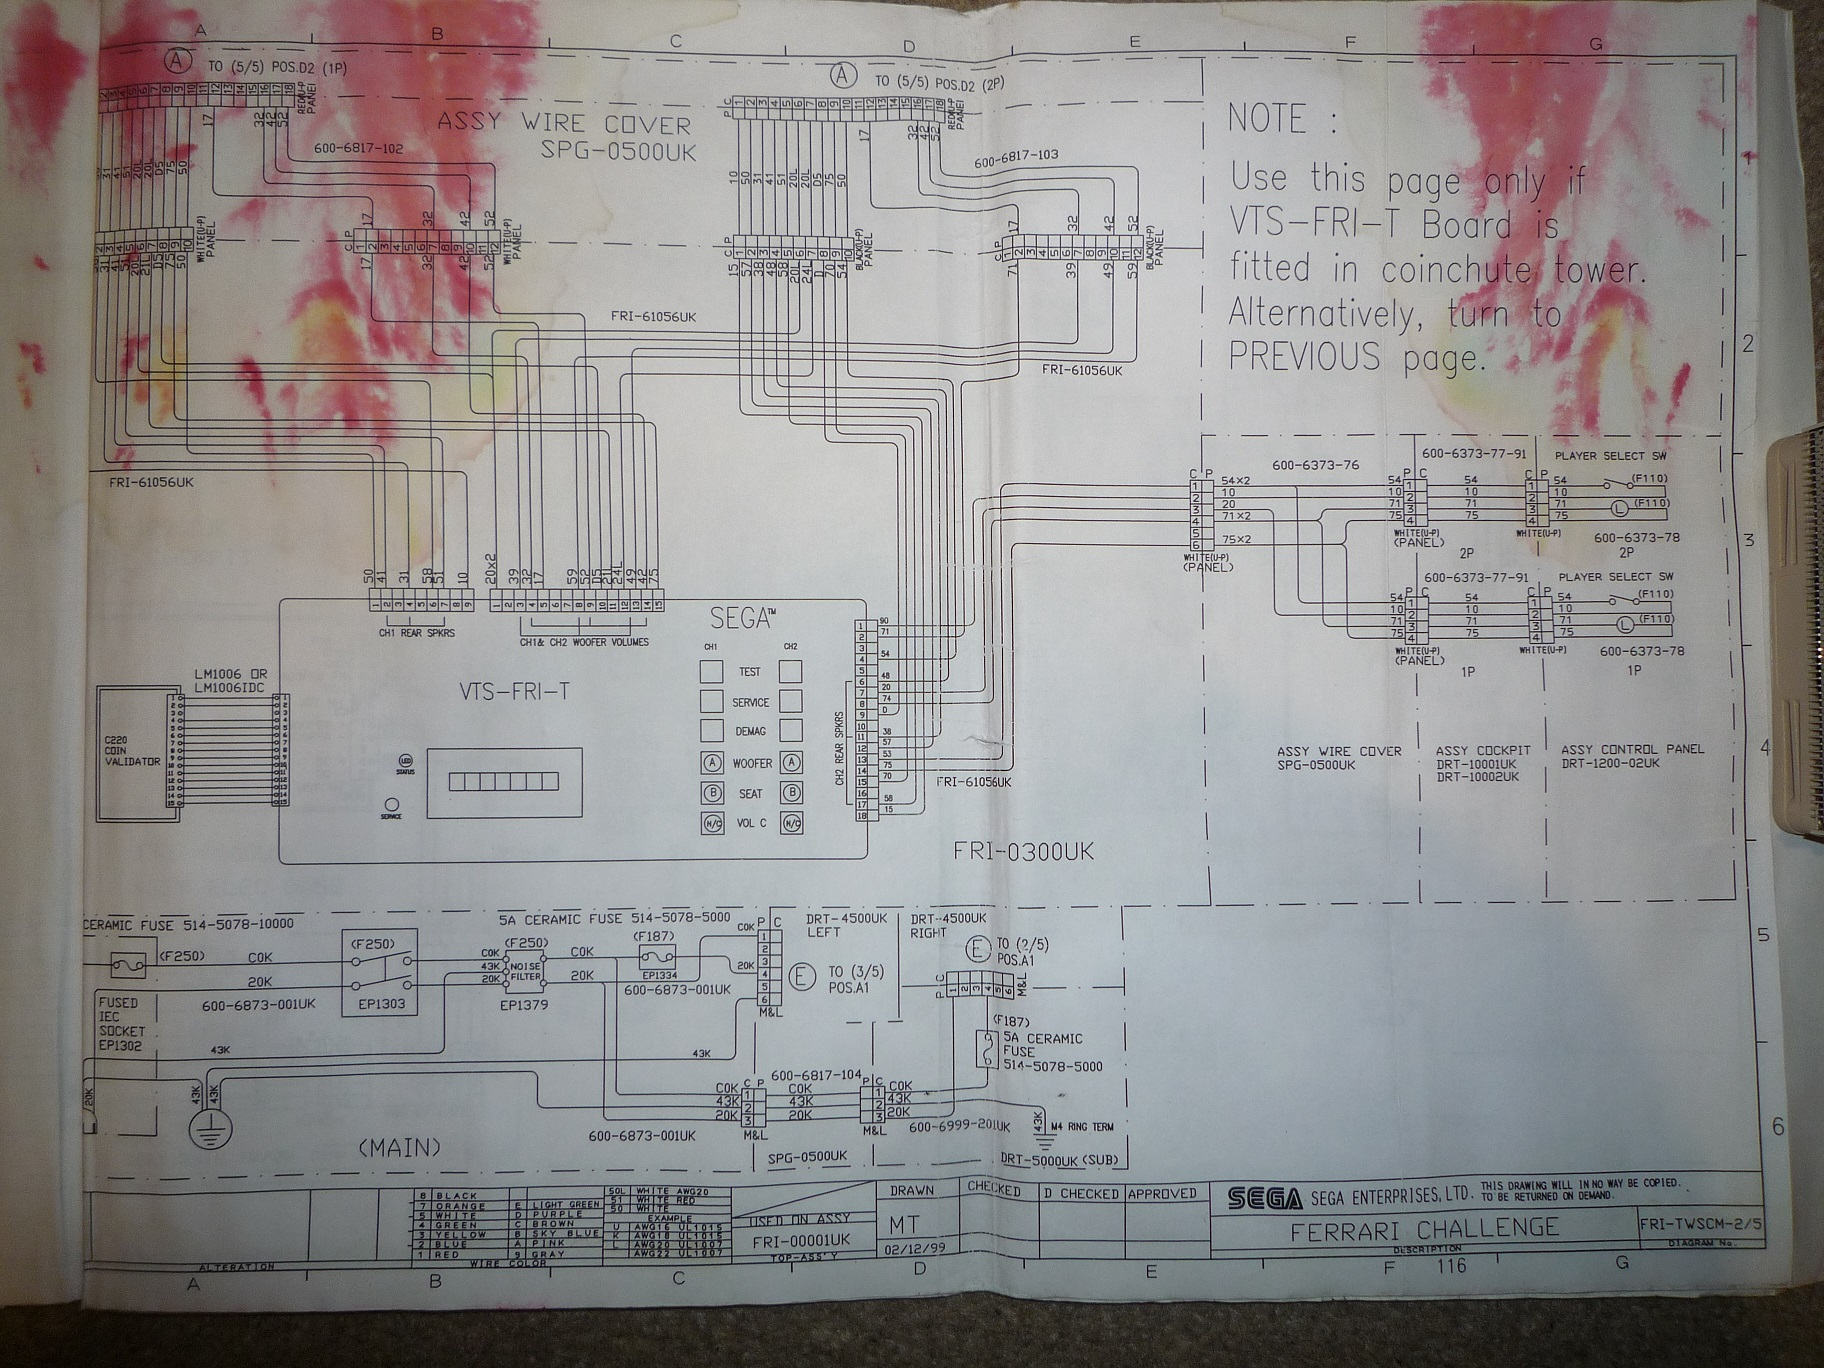 Searching F355 Challenge Wiring Diagram In Hd